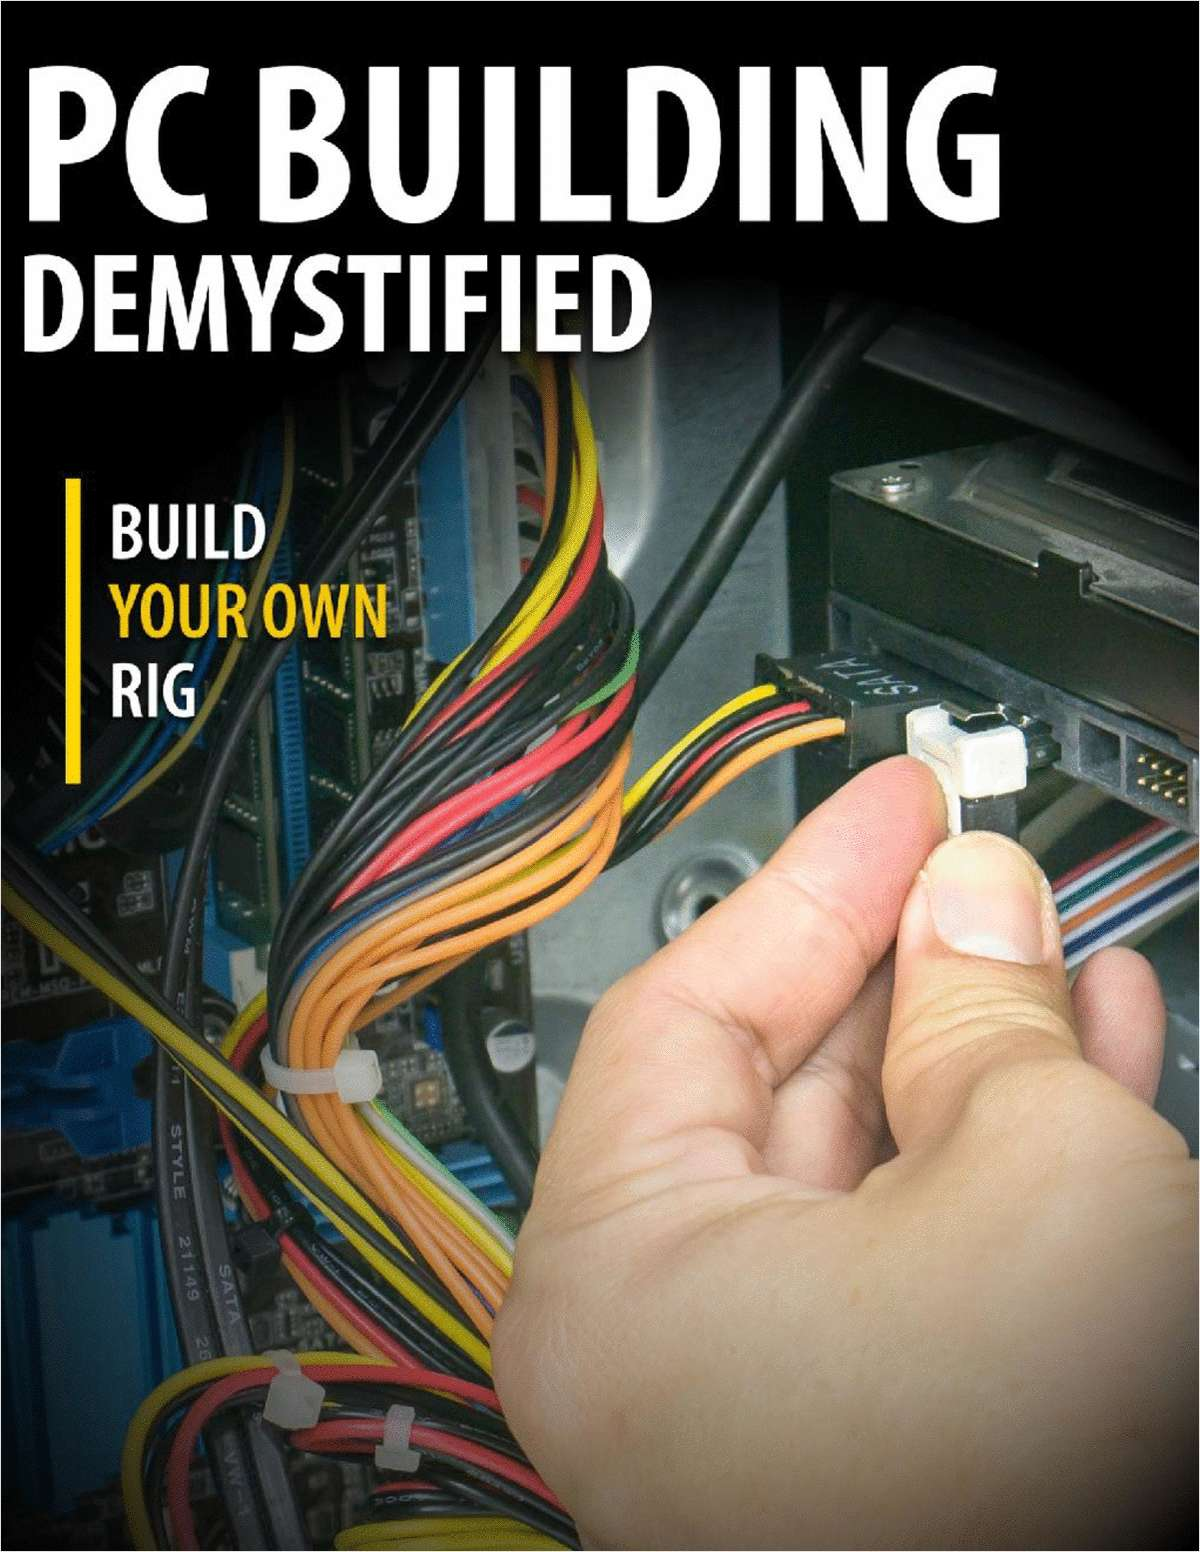 PC Building Demystified